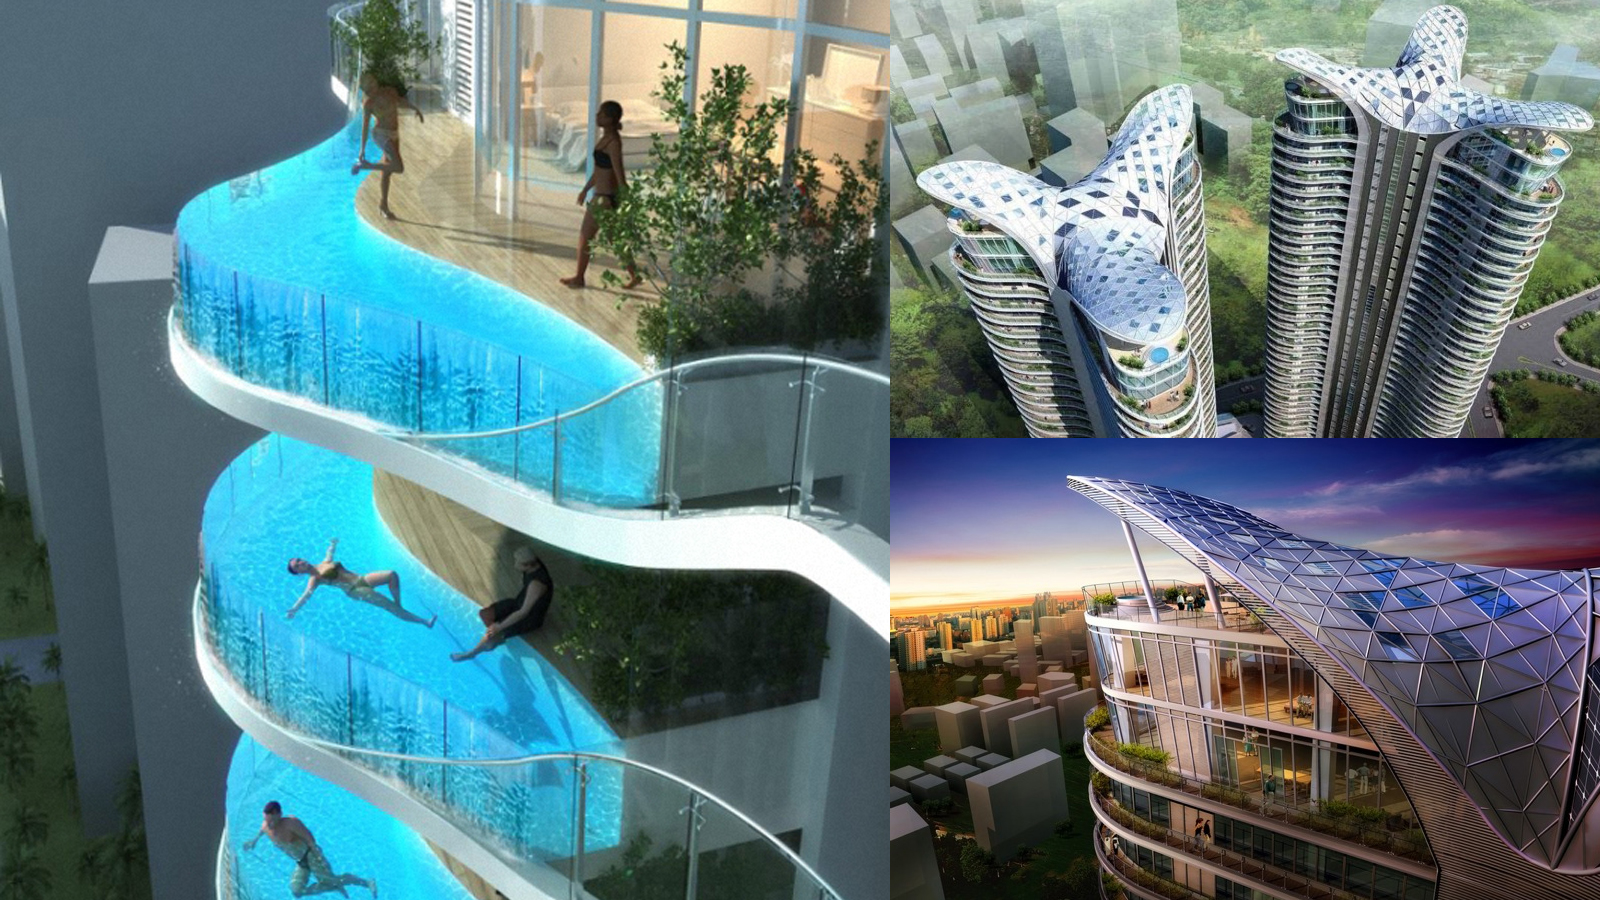 This building 39 s balconies are swimming pools gizmodo for The balcony apartments